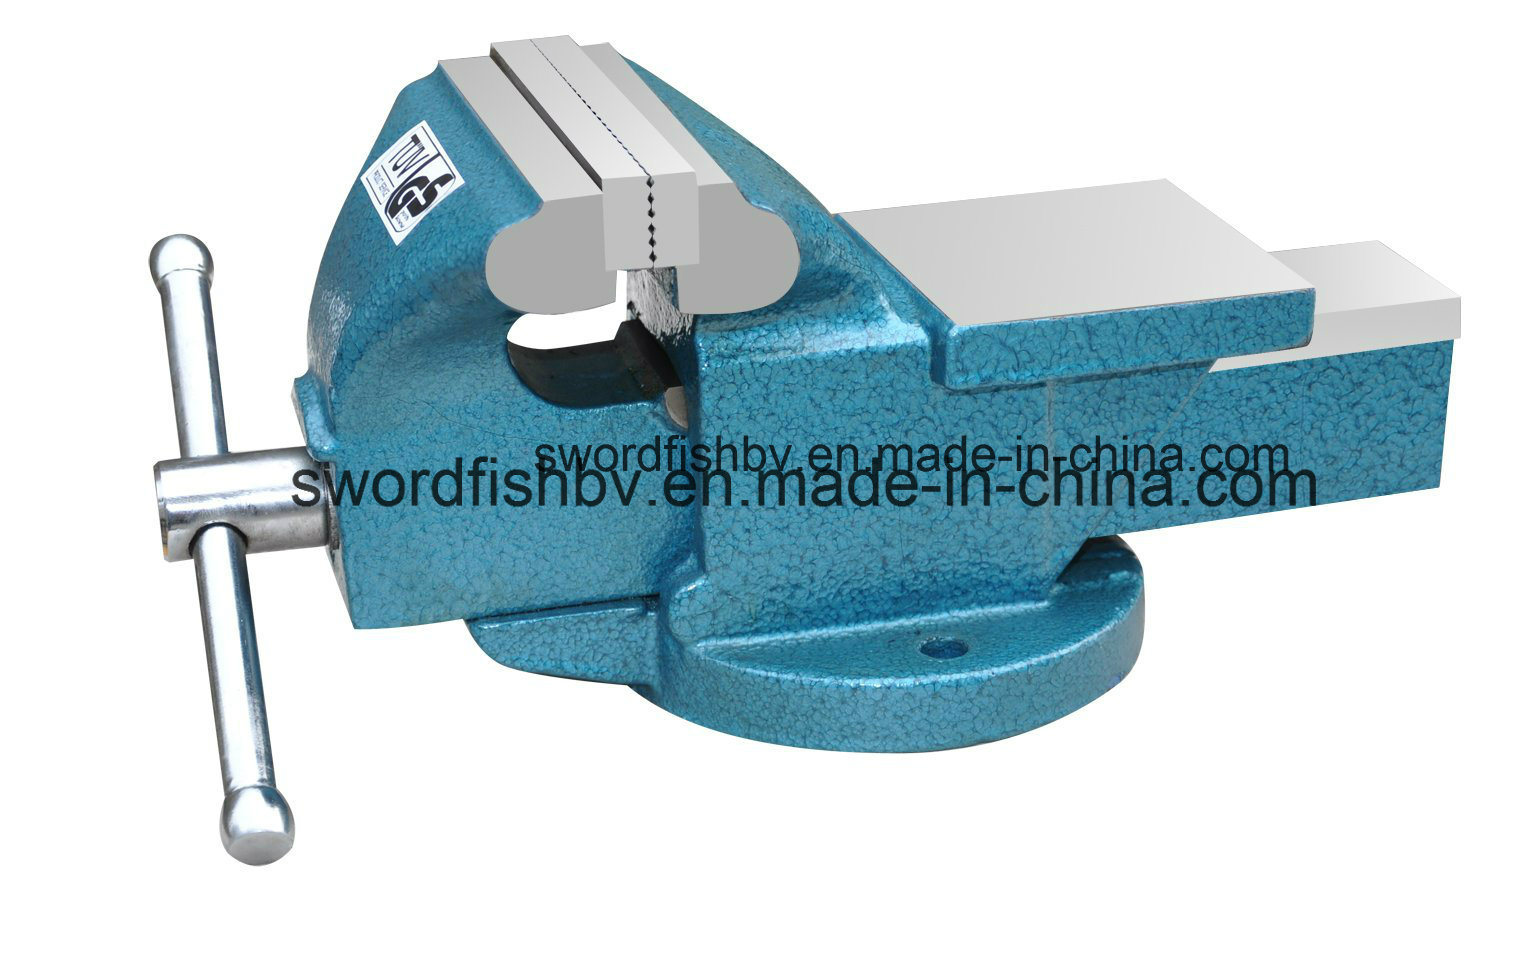 Swordfish Light Duty Bench Vise Fixed with Anvil